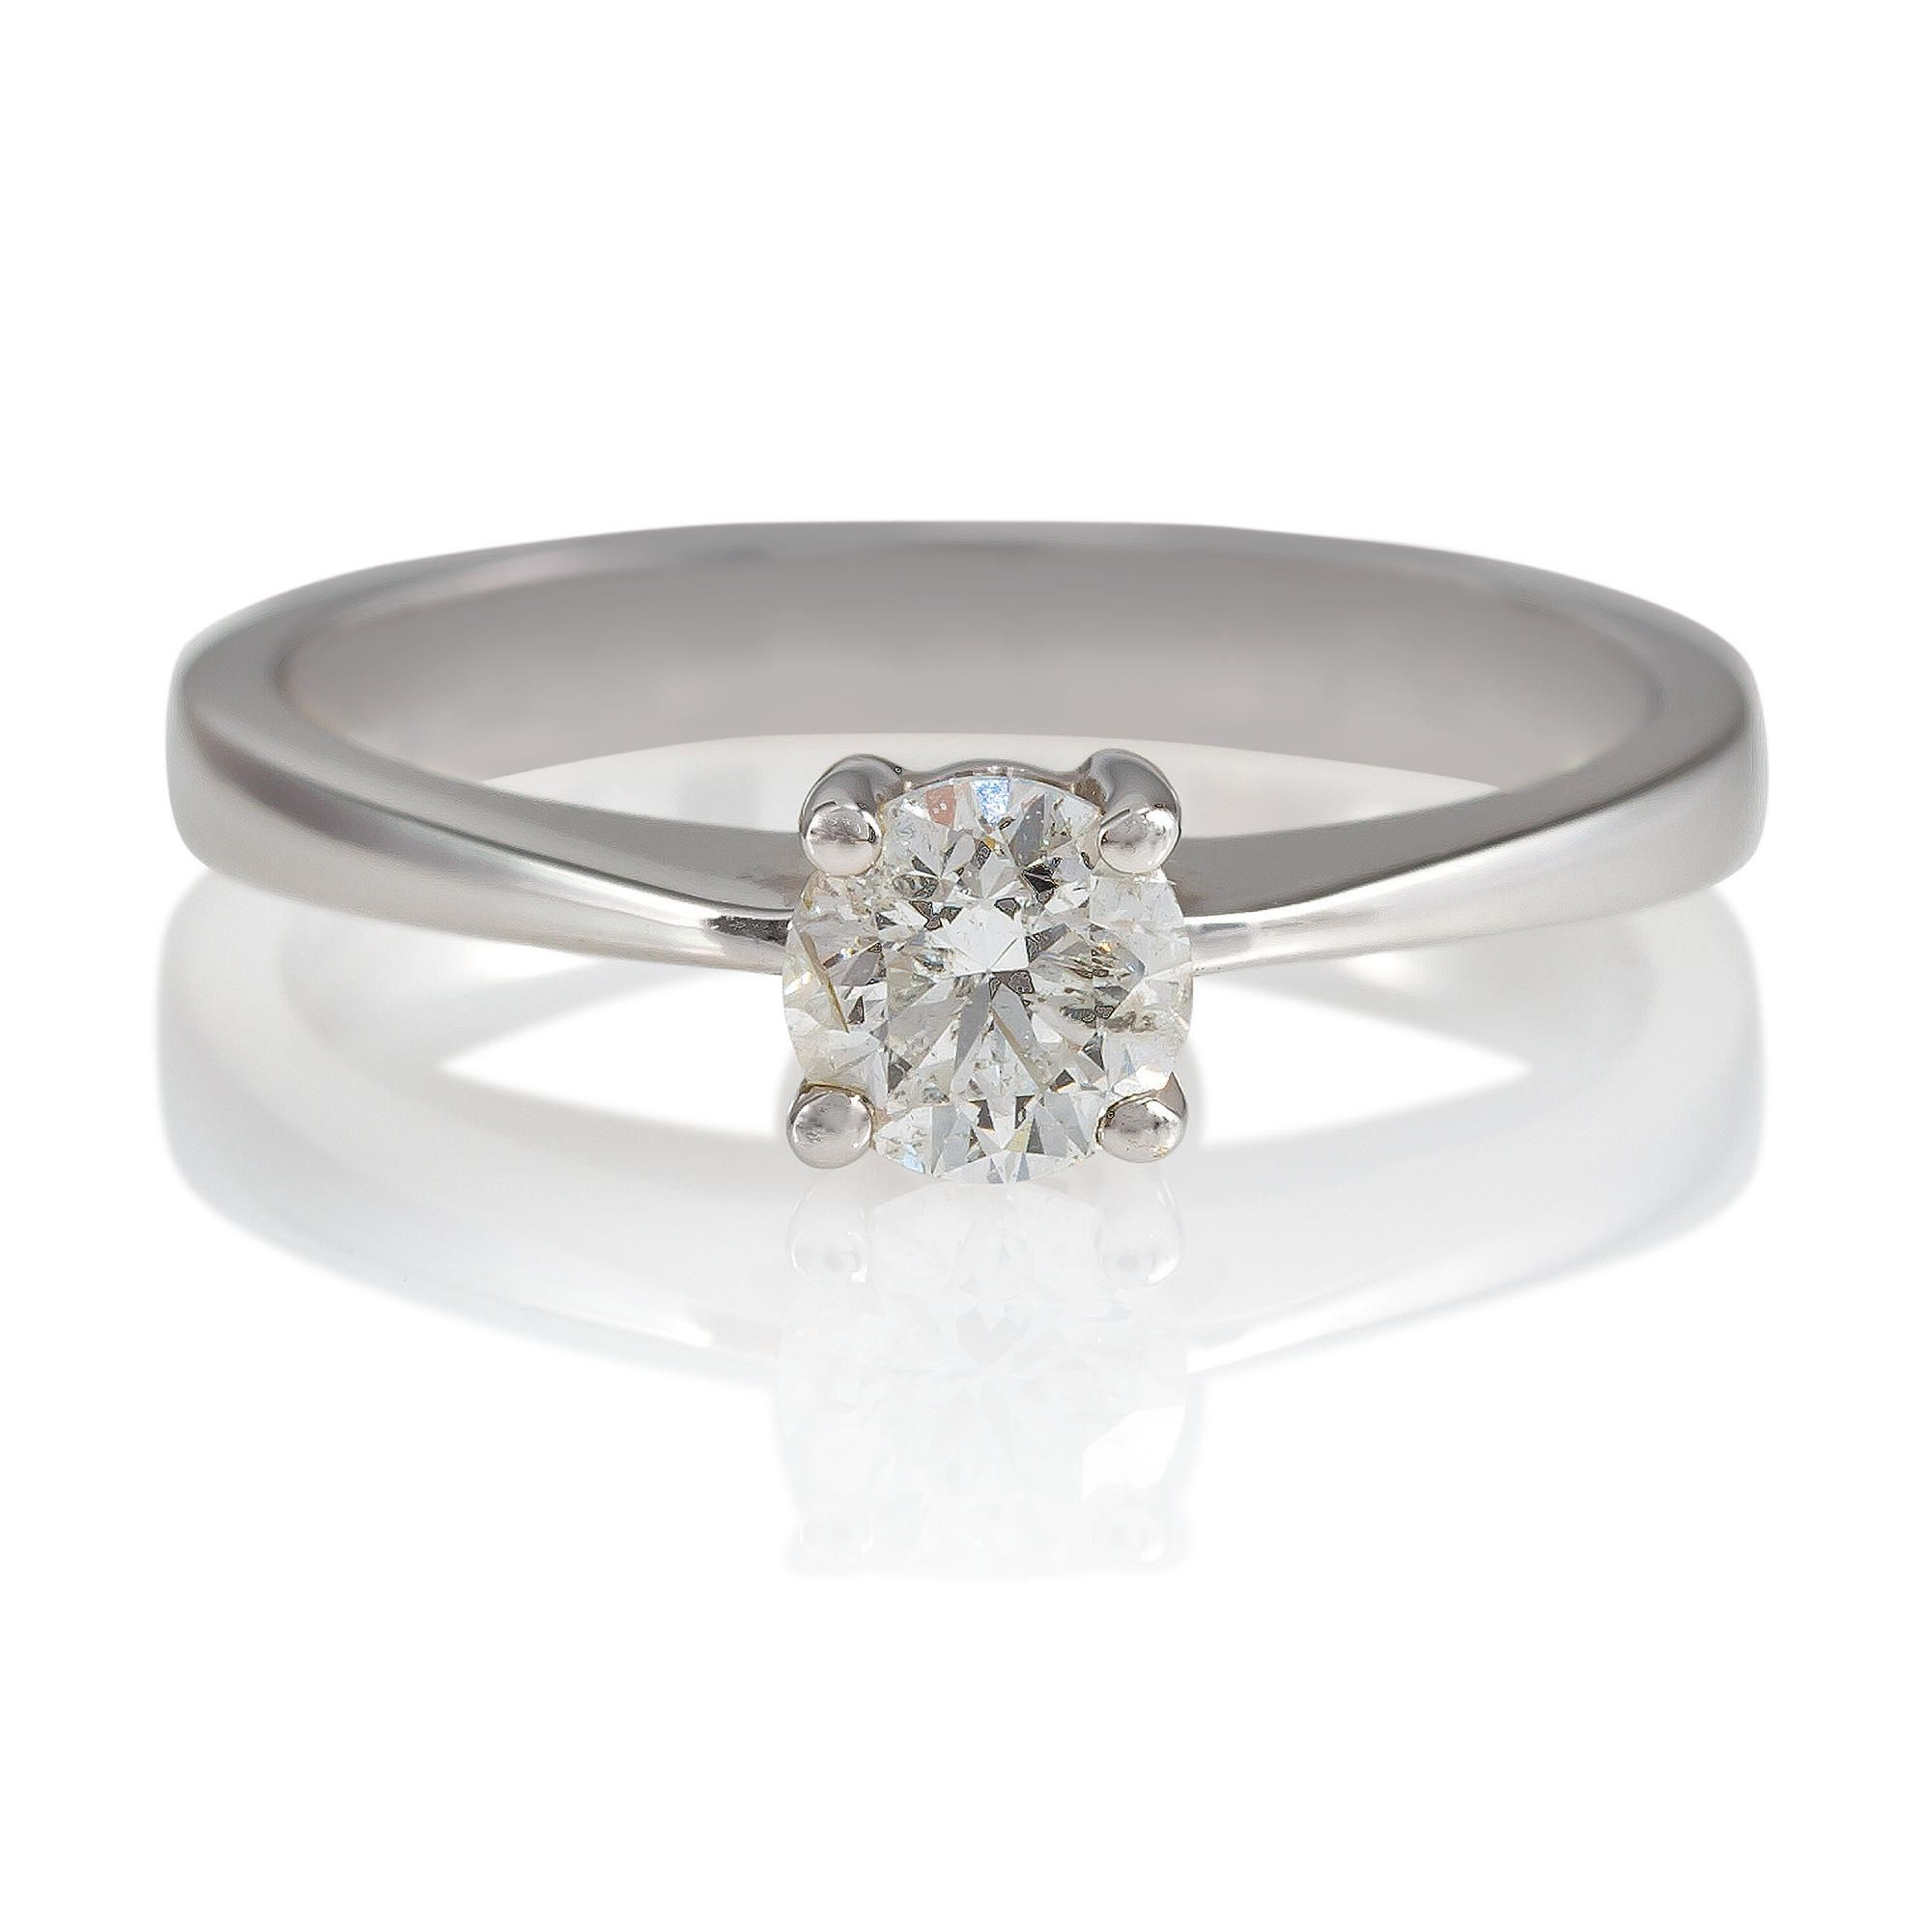 18ct White Gold 1/2ct Diamond Solitaire Ring, N at Tesco Direct